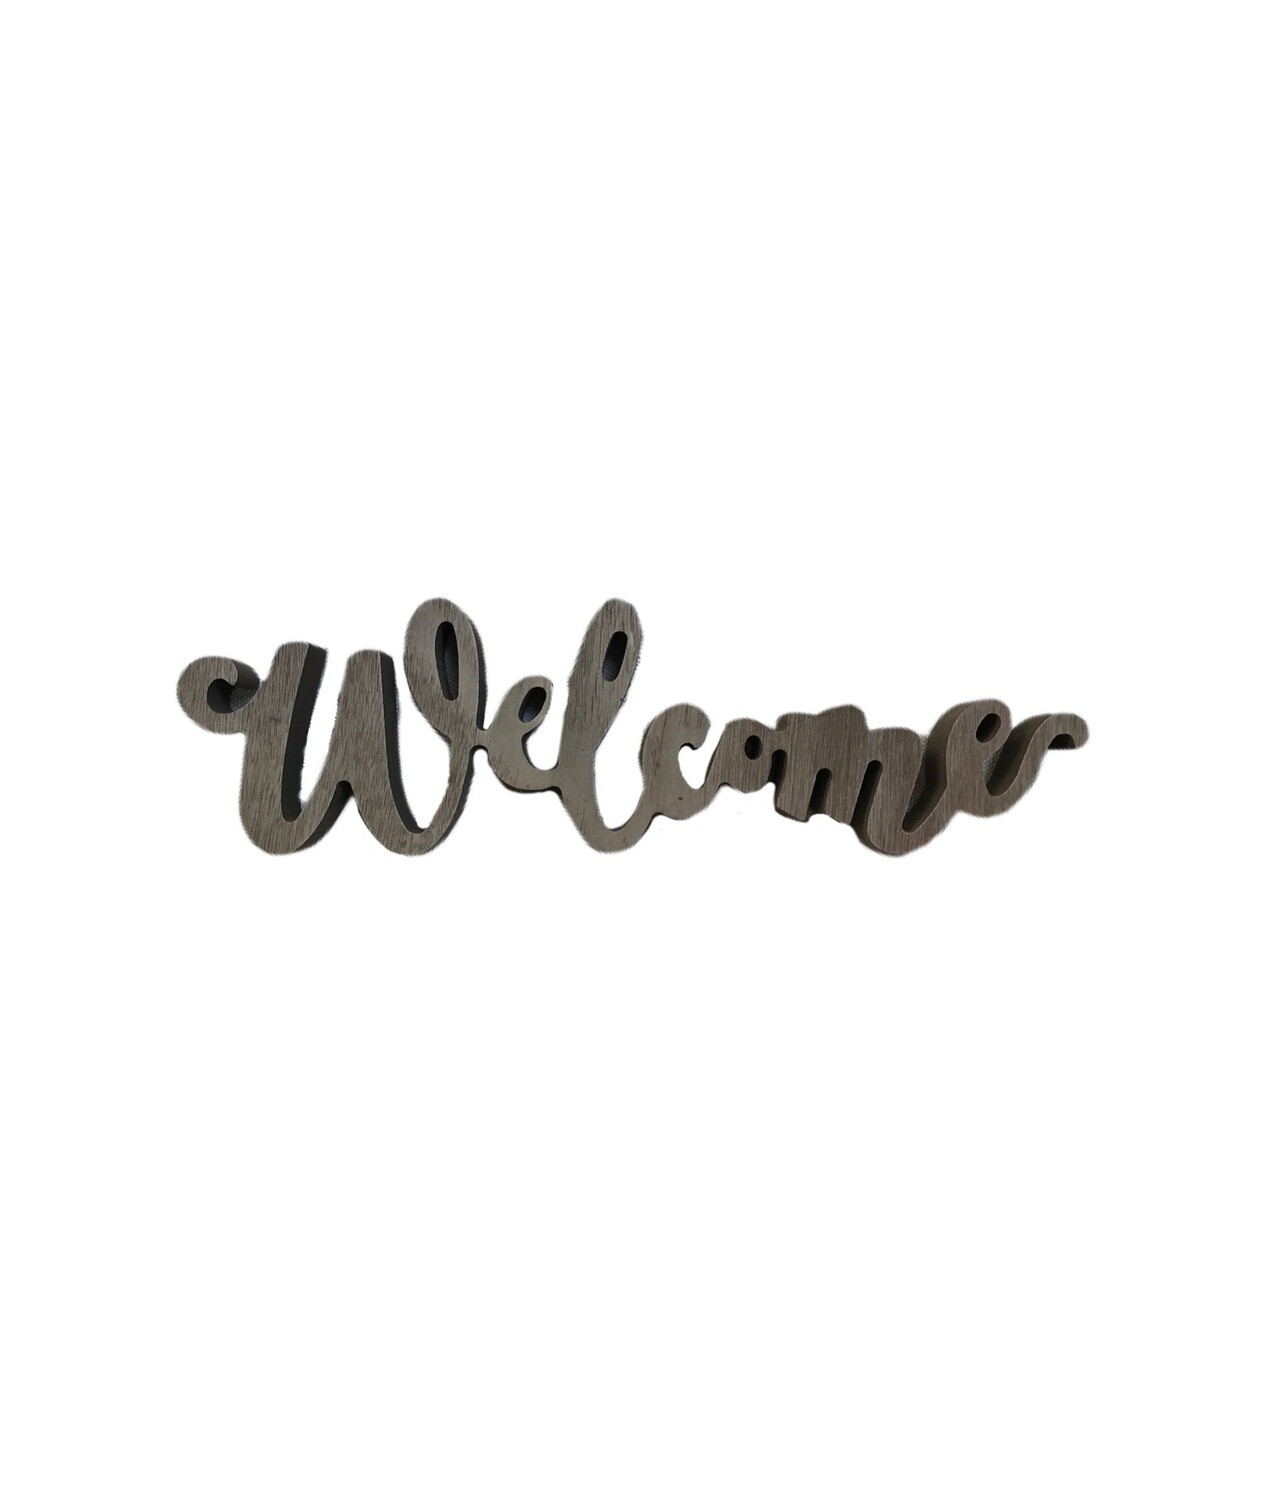 Welcome cutout tabletop sign